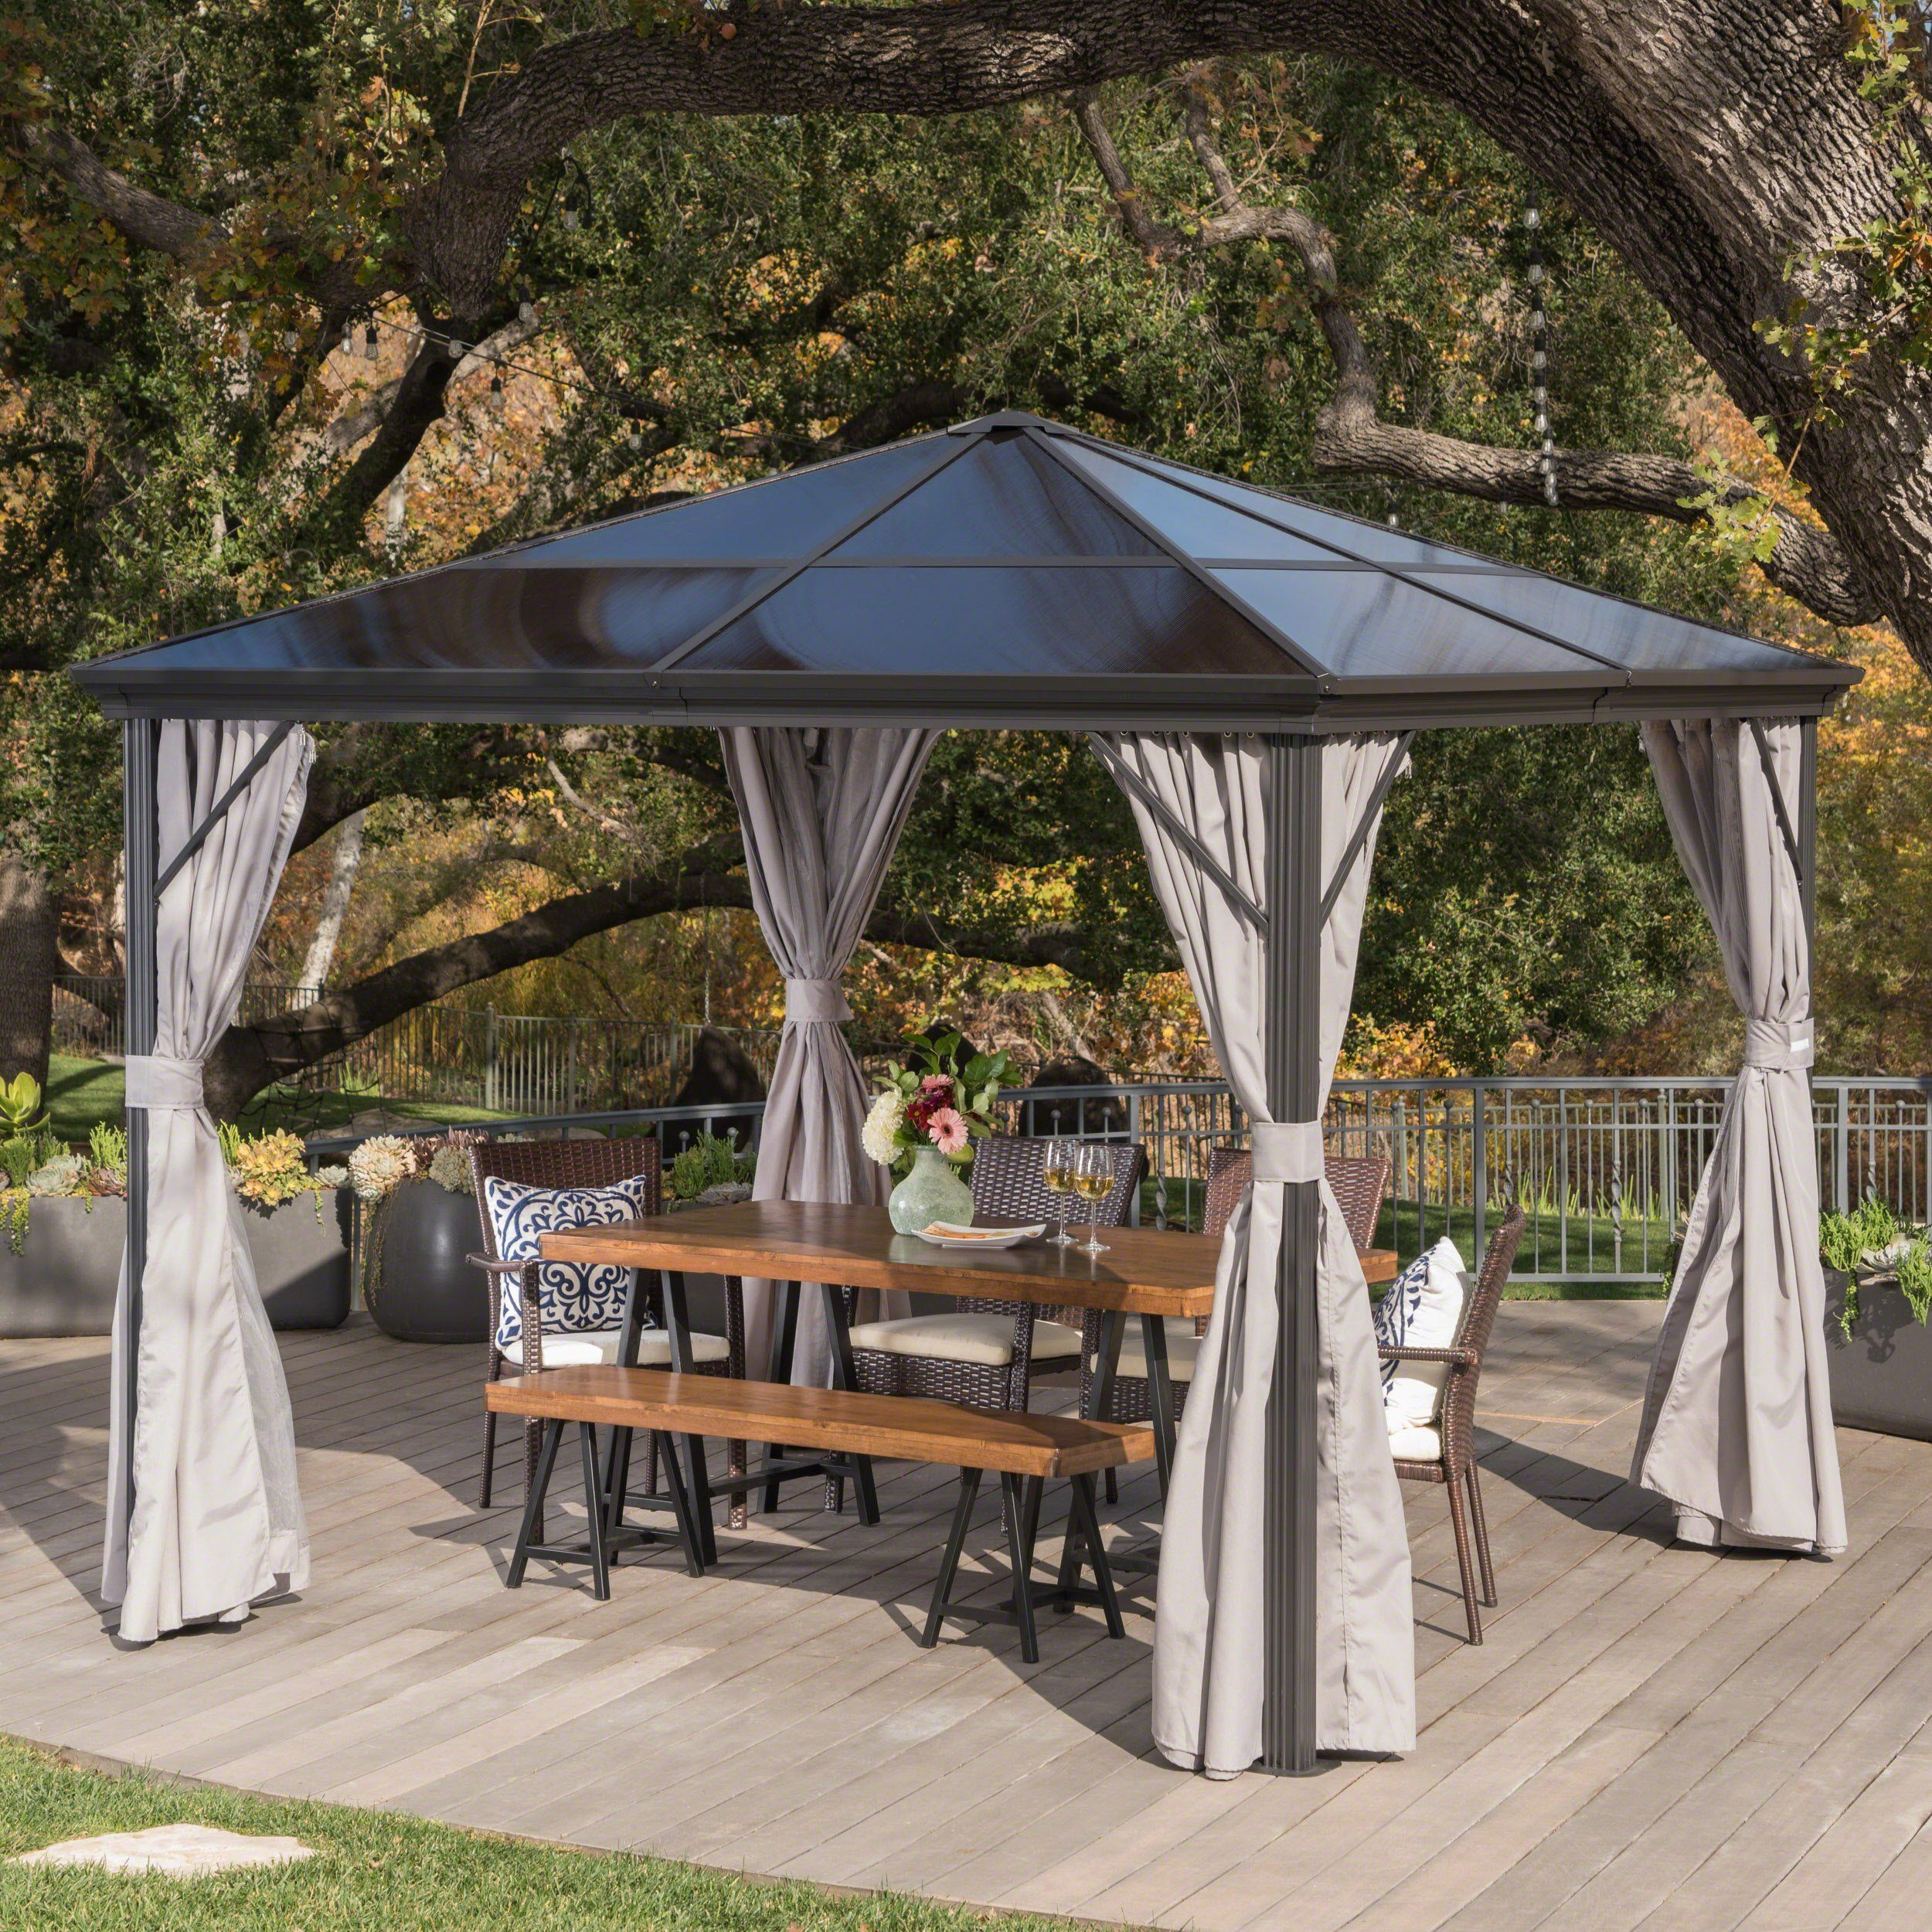 Bali Outdoor 10 X 10 Foot Rust Proof Aluminum Framed Hardtop Gazebo With Curtains With Images Hardtop Gazebo Gazebo